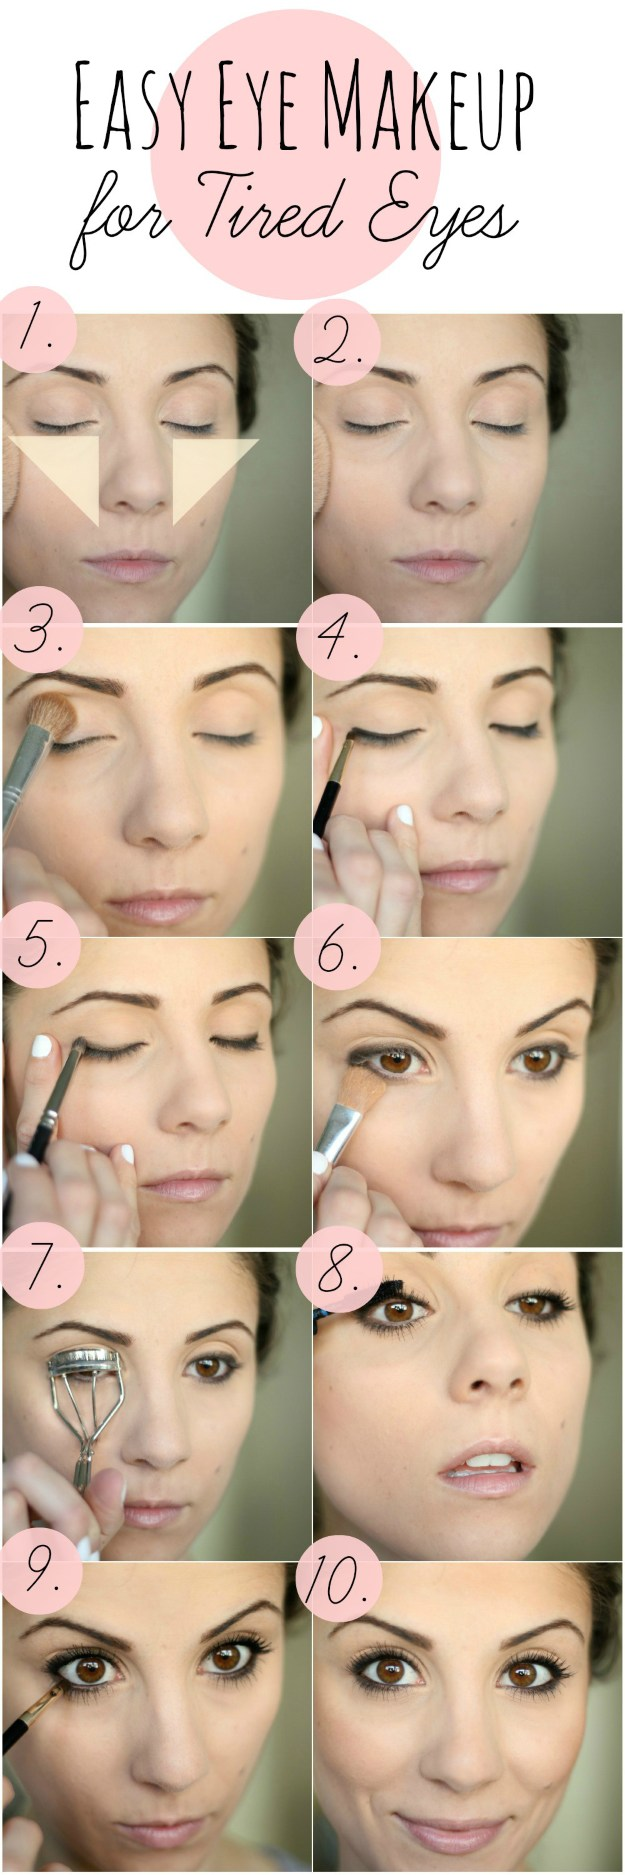 Fashionble natural eye makeup tutorials for work | pinterest.